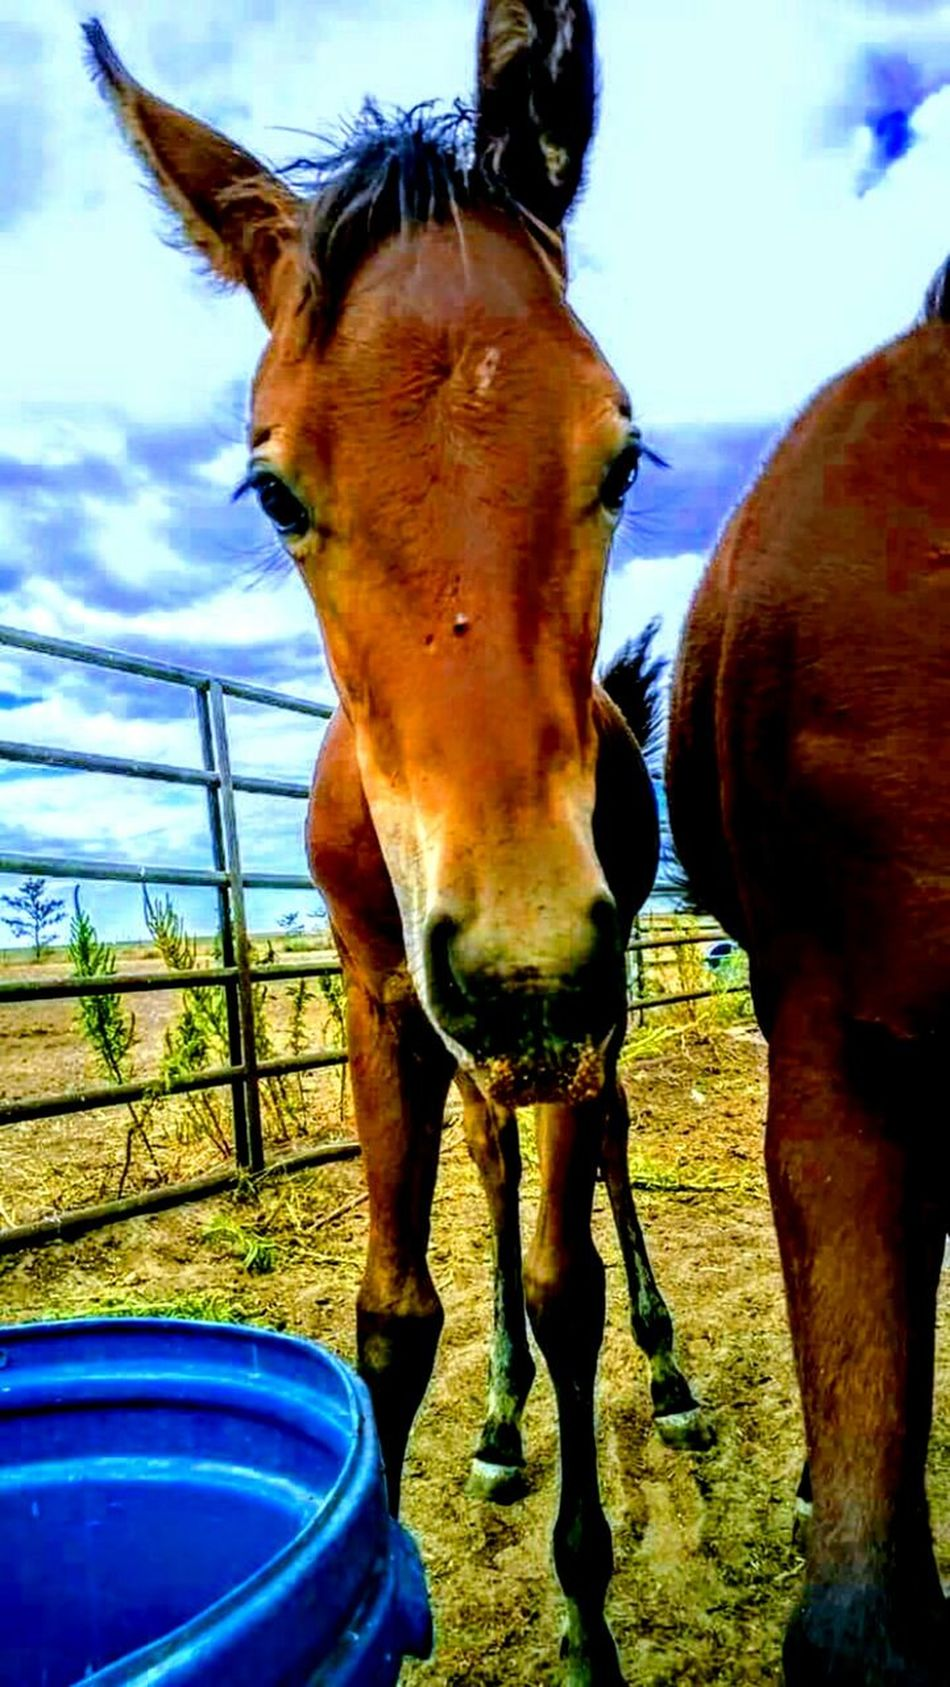 Ranch horses Animal Themes Domestic Animals Horse Mammal Livestock Animal Head  Sky Outdoors Field Standing No People Day Grass Close-up Nature Paddock Stable Working Animal Barn Filly Pasture, Paddock, Grassland, Pastureland Silhouette Country Living Ranch Farm